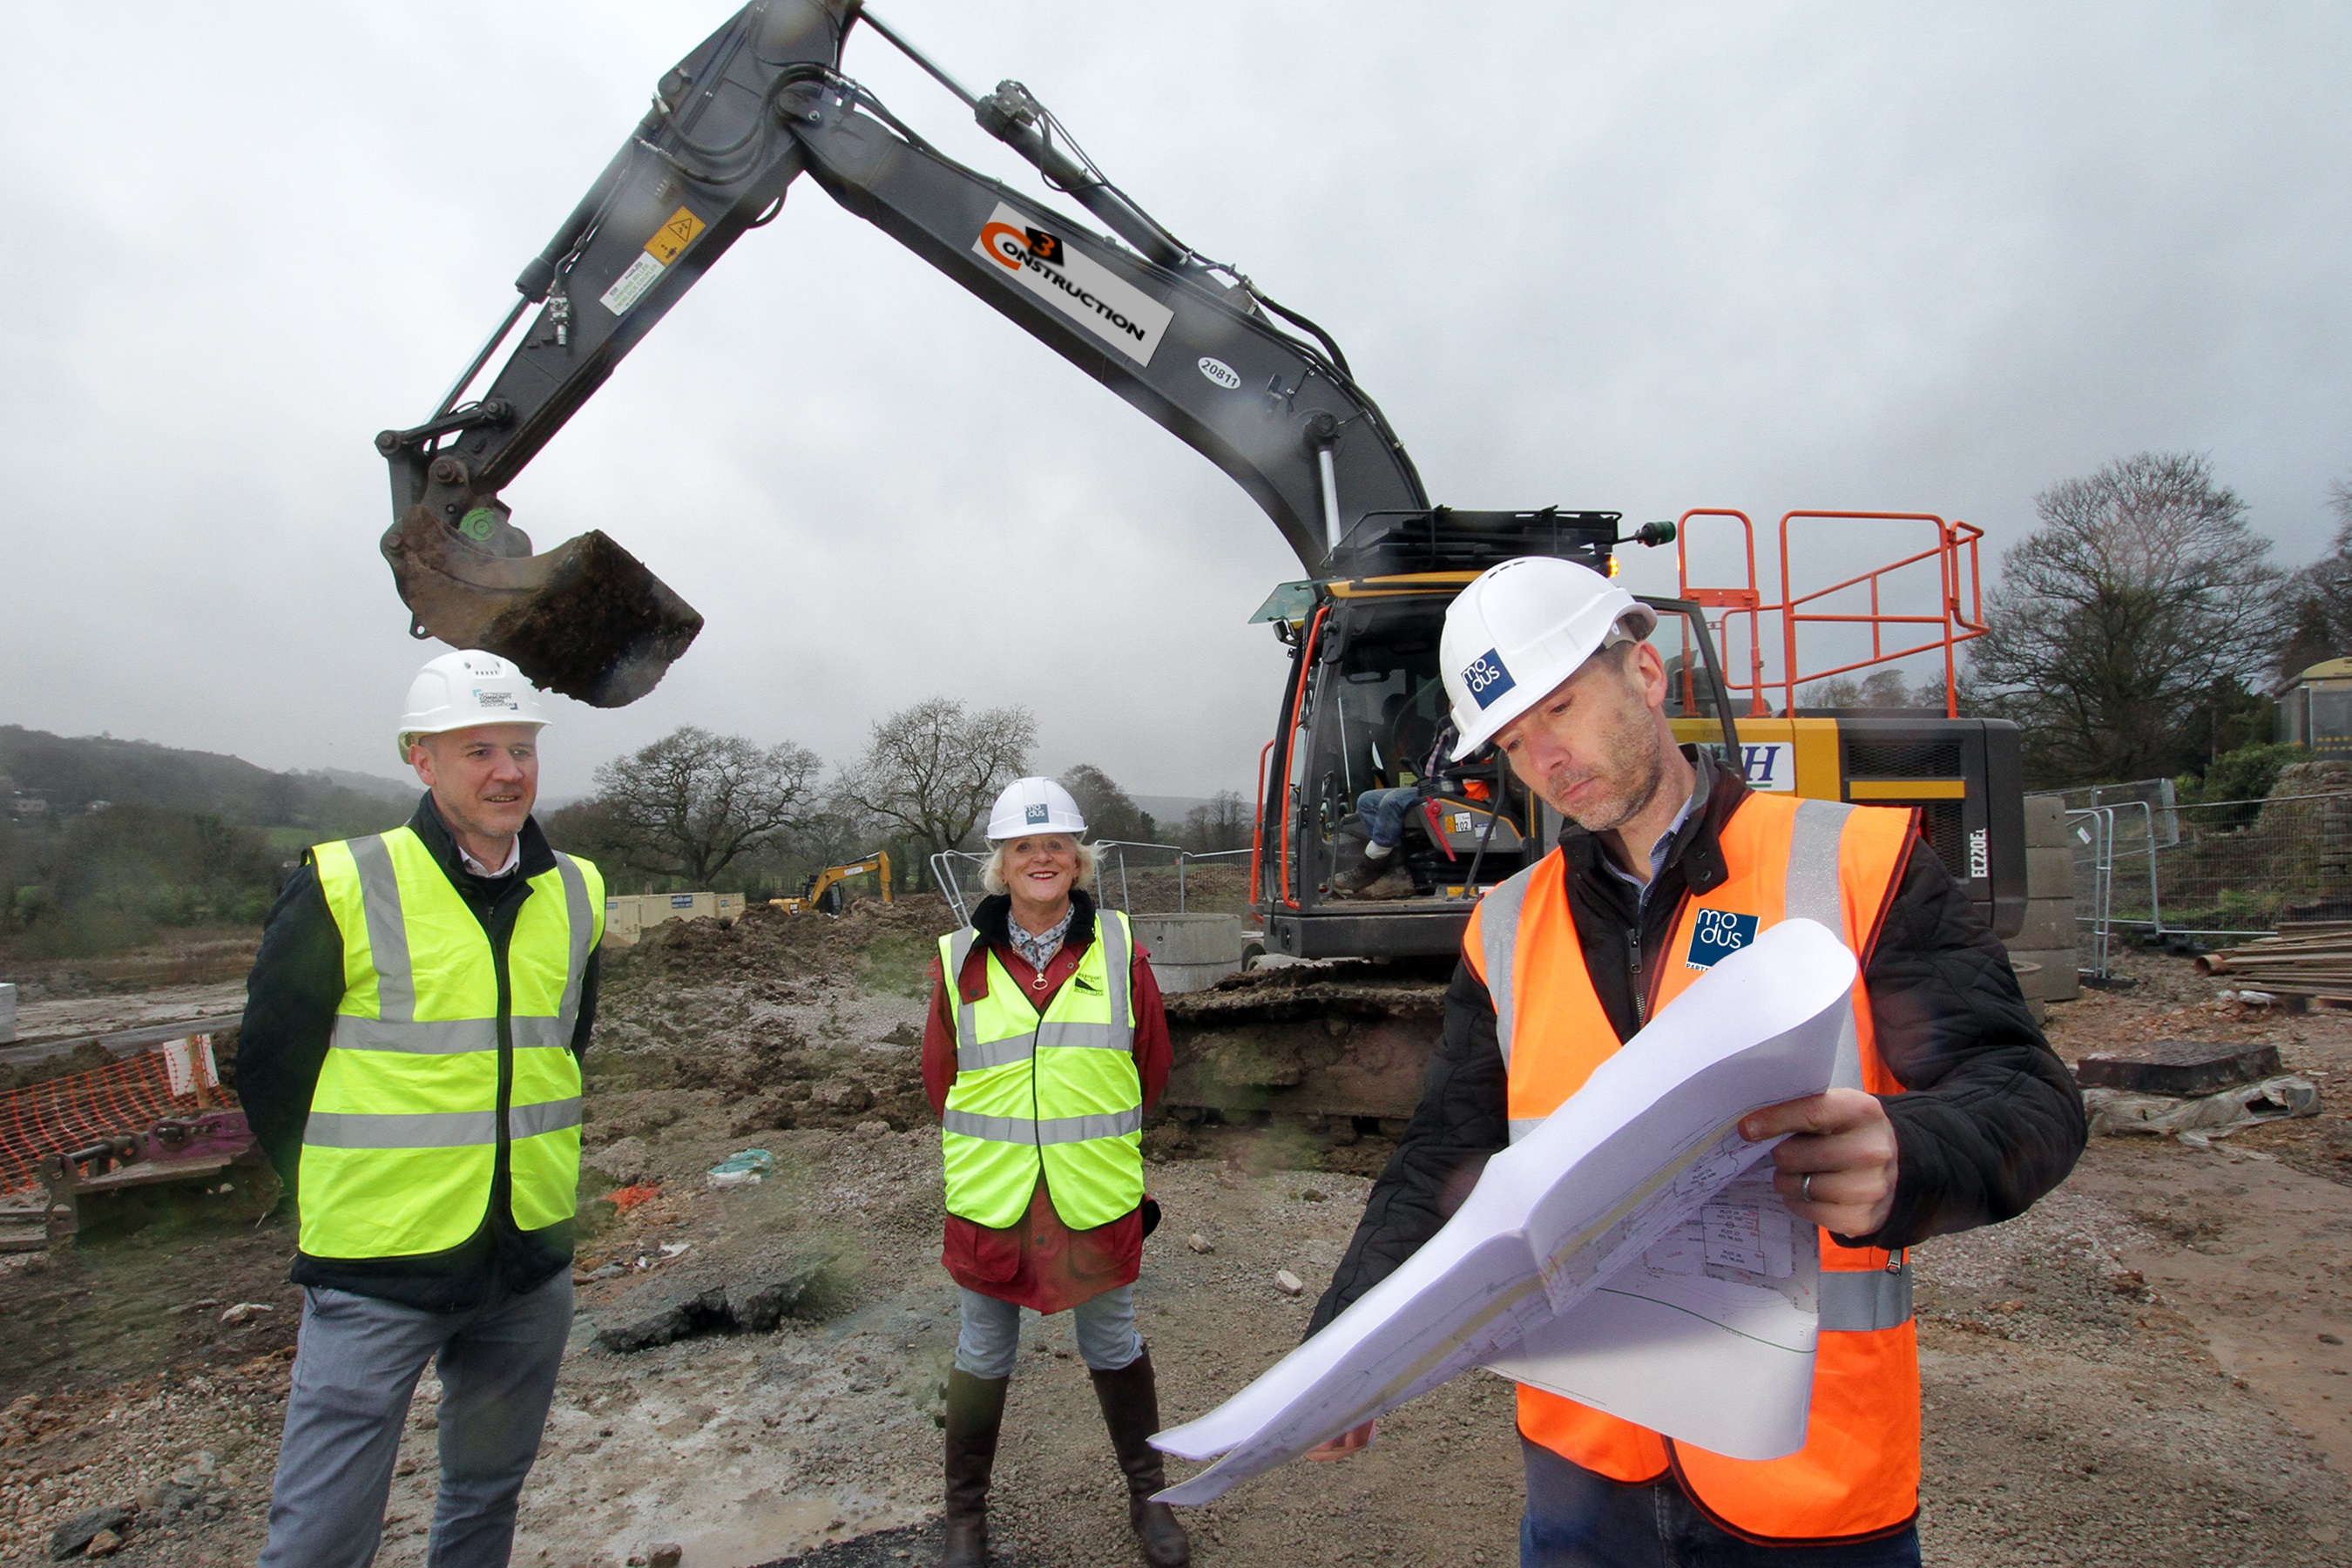 In the beautiful valley, just north of Matlock, work has begun on 57 new affordable homes.